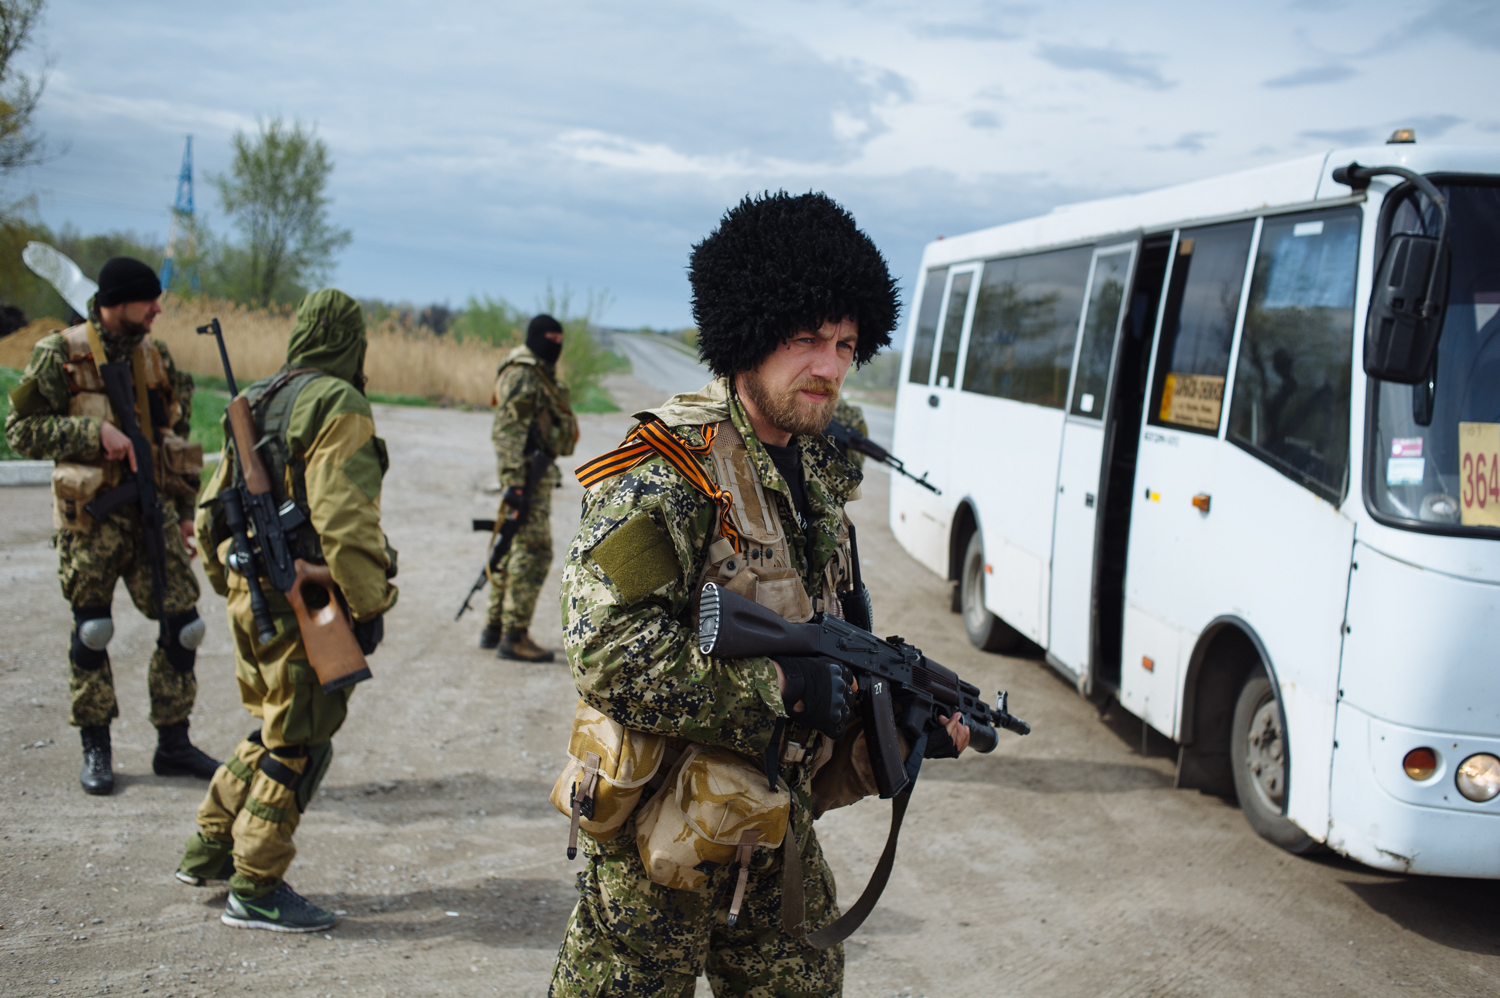 The Russian paramilitary group known as the Wolves' Hundred, with their commander Evgeny Ponomaryov in the foreground, block the road near the checkpoint not far from Slavyansk, in eastern Ukraine, April 20, 2014